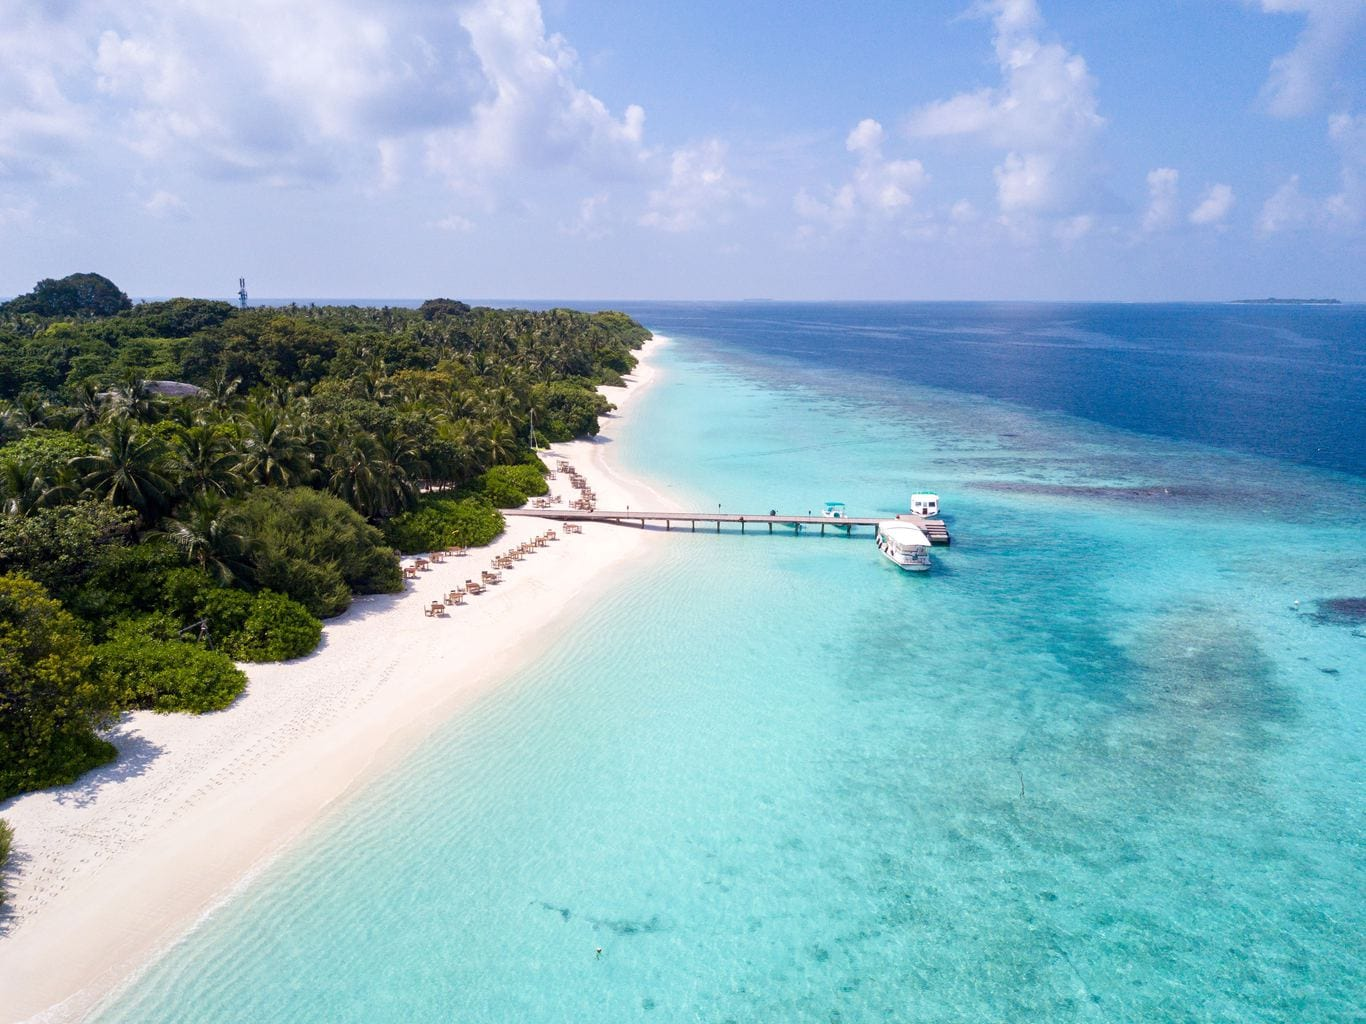 Aerial shot of the beach at Soneva Fushi